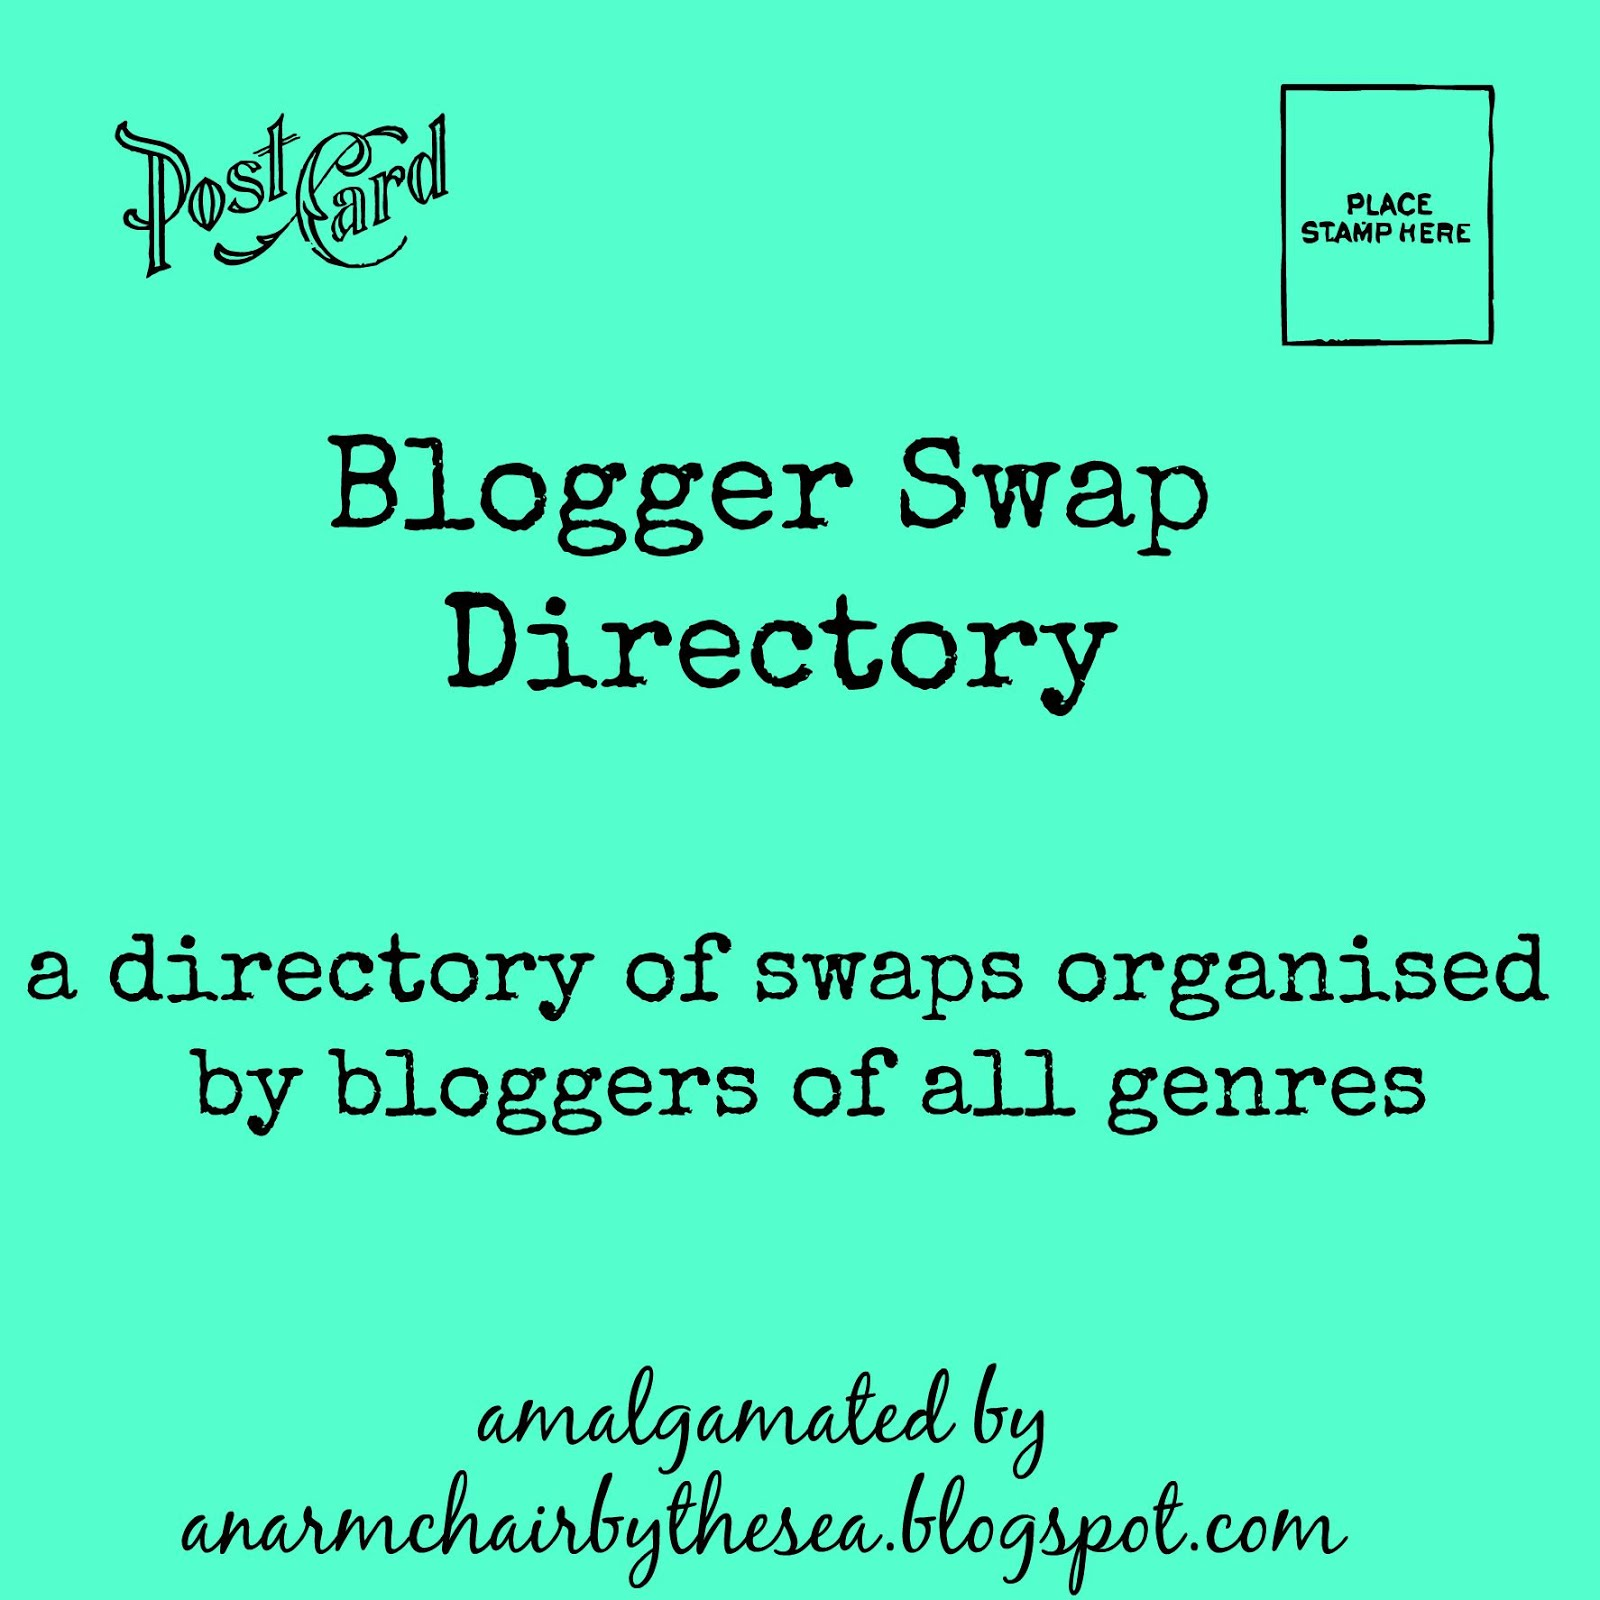 The Blogger Swap Directory